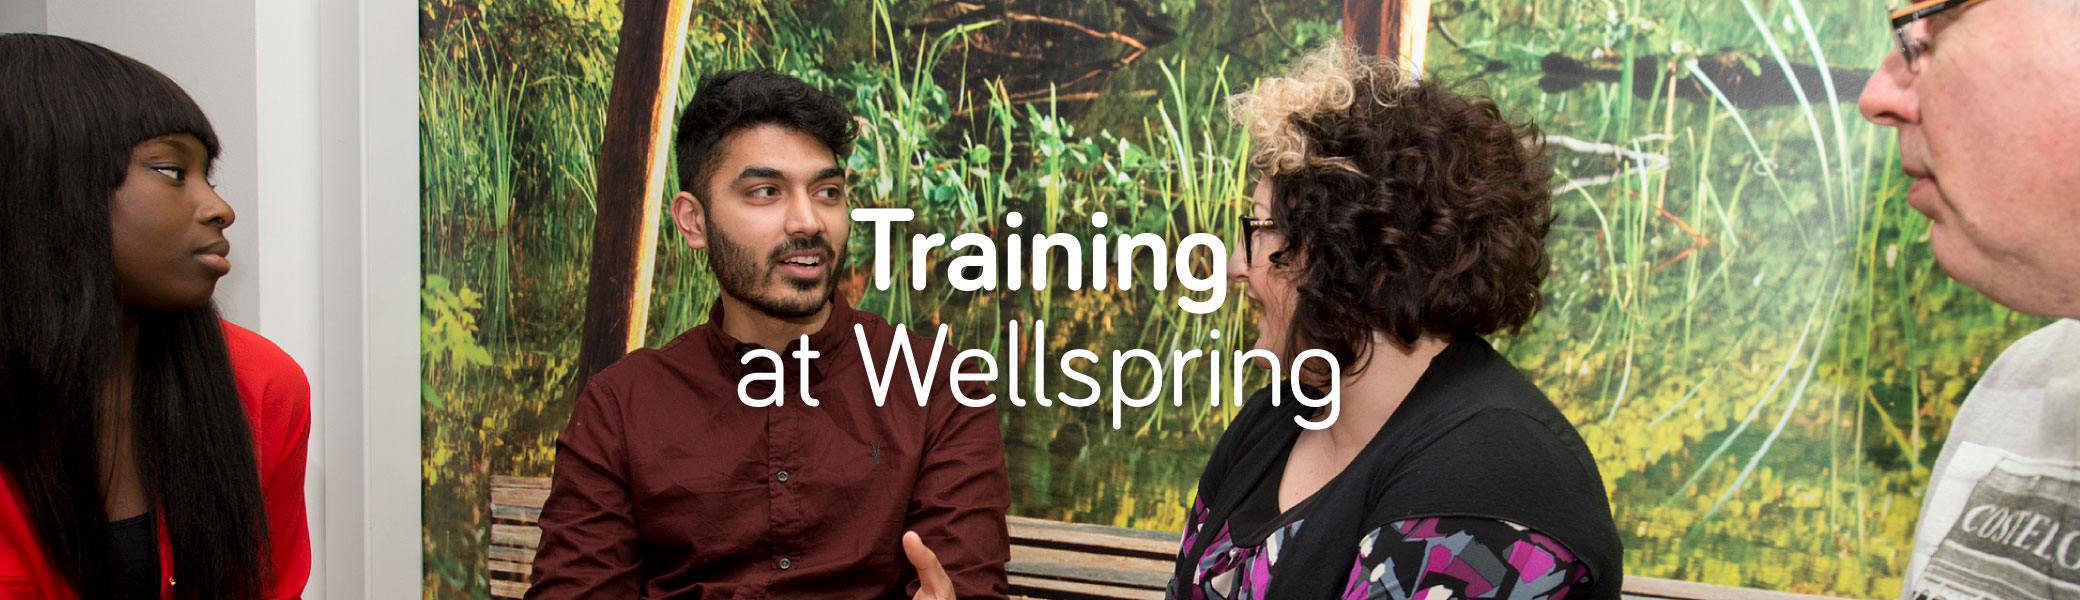 Wellspring-Training-Web_003